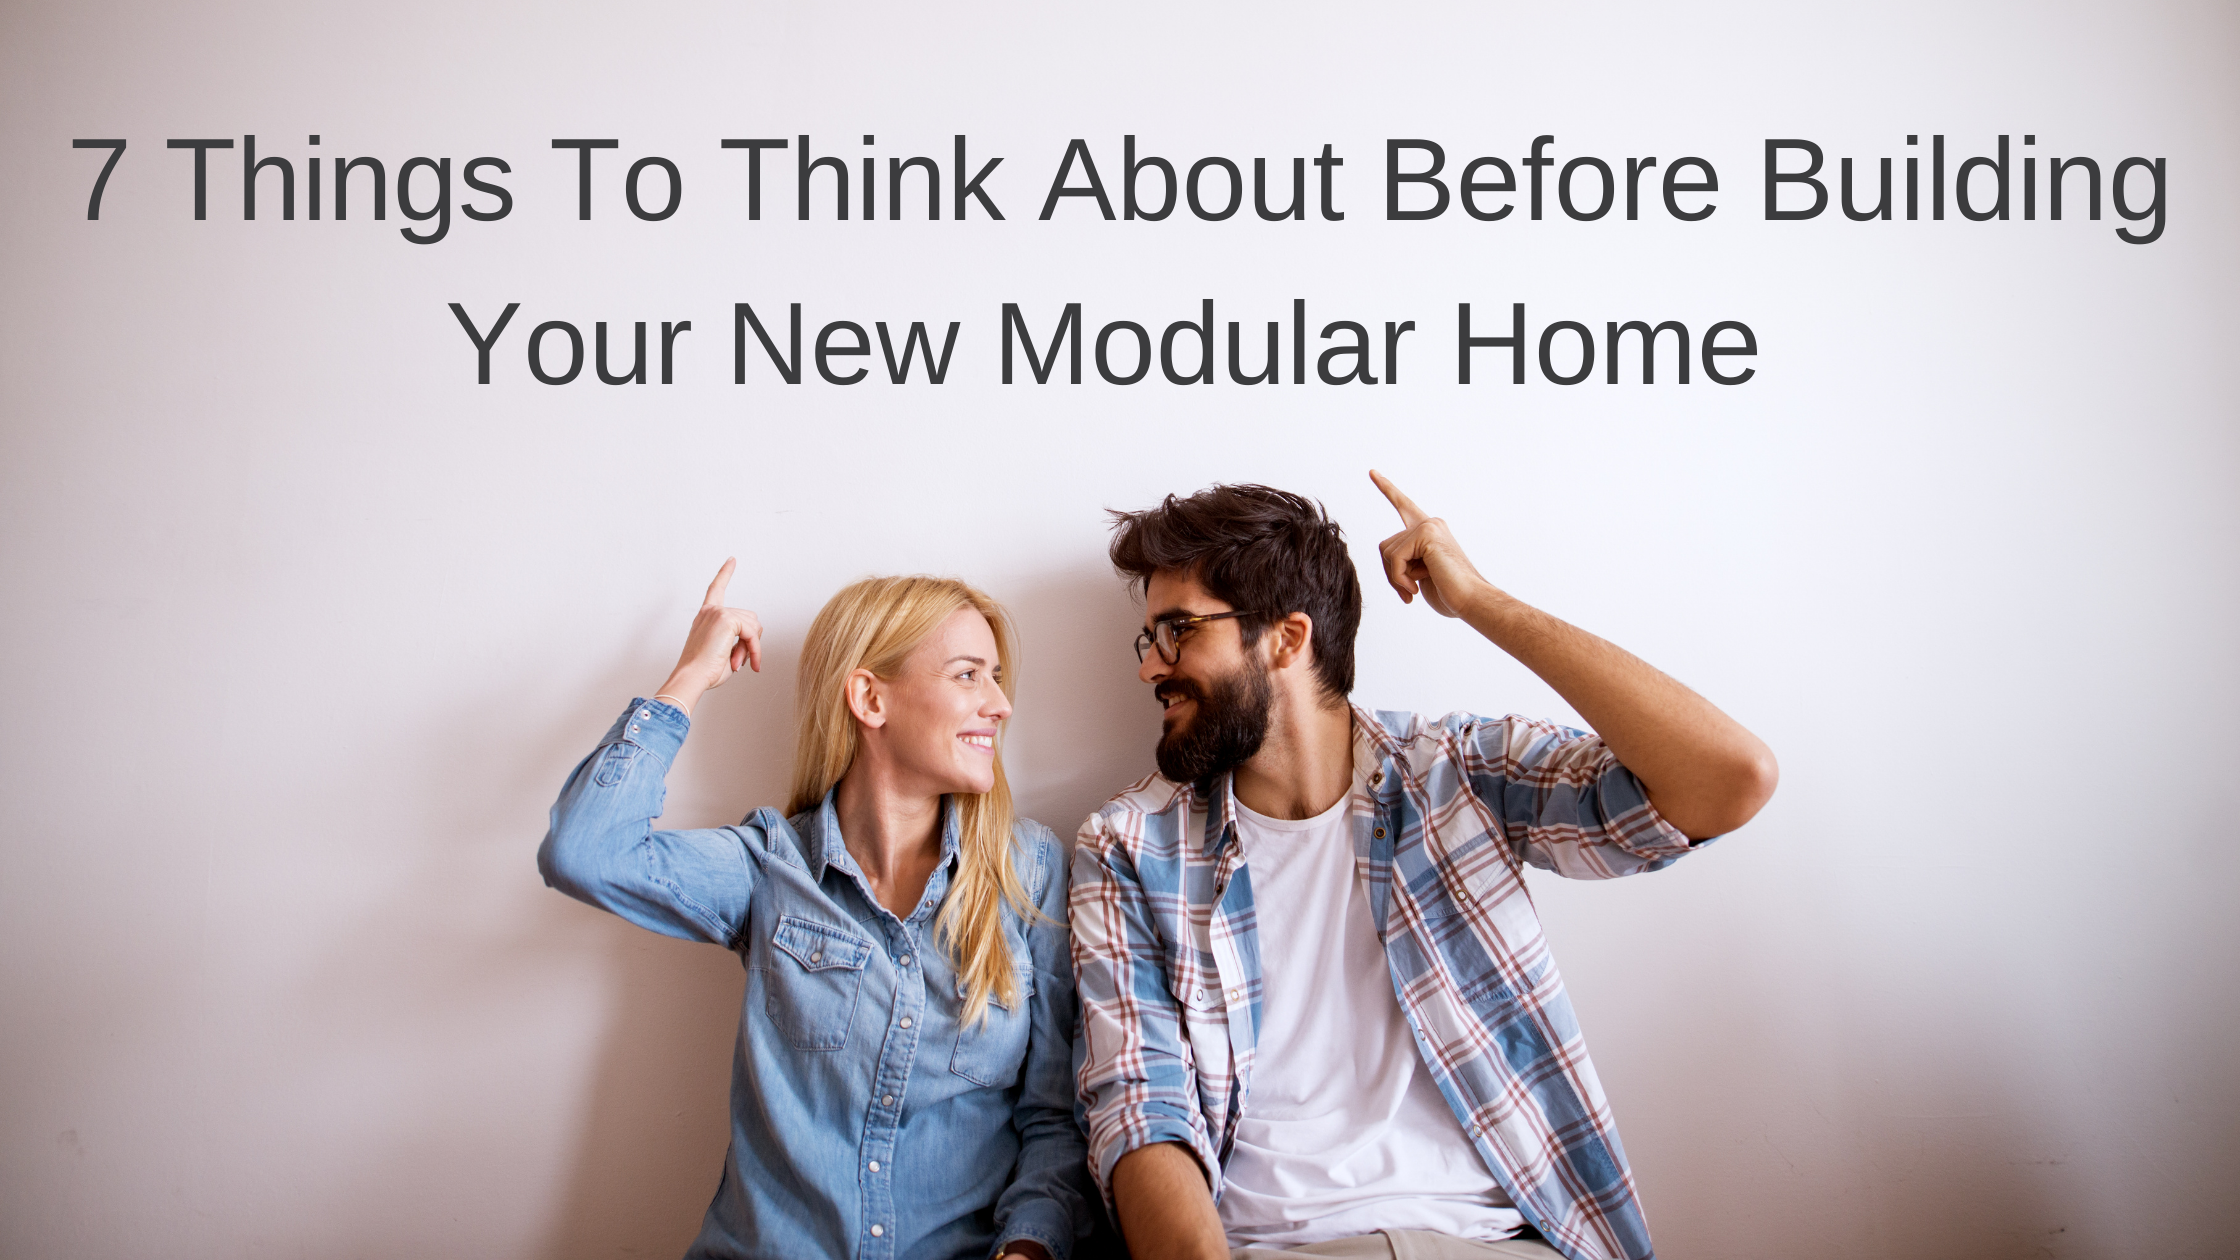 7 Things To Think About Before Building Your New Modular Home